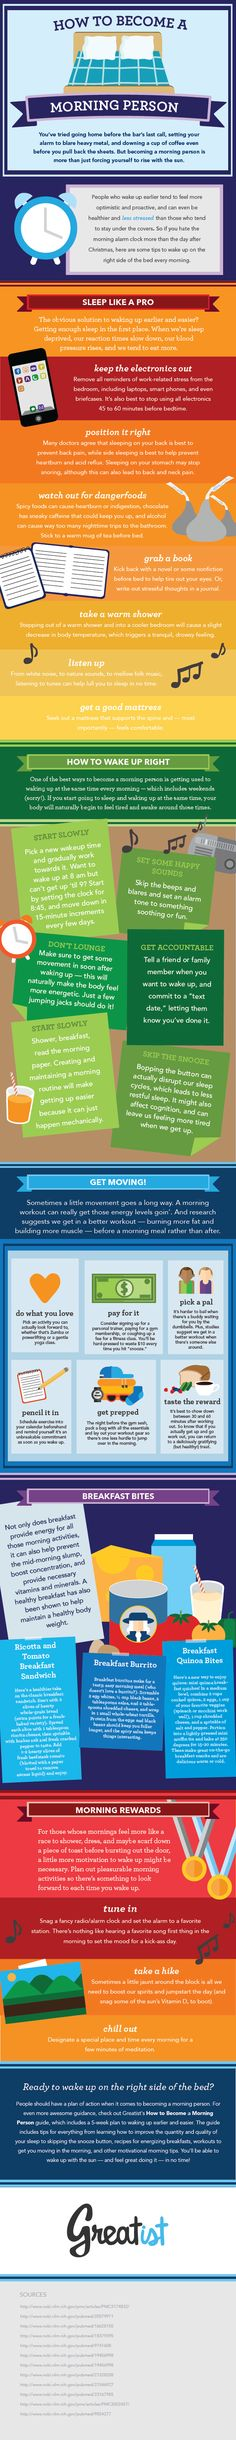 How to Become a Morning Person [INFOGRAPHIC] | Greatist